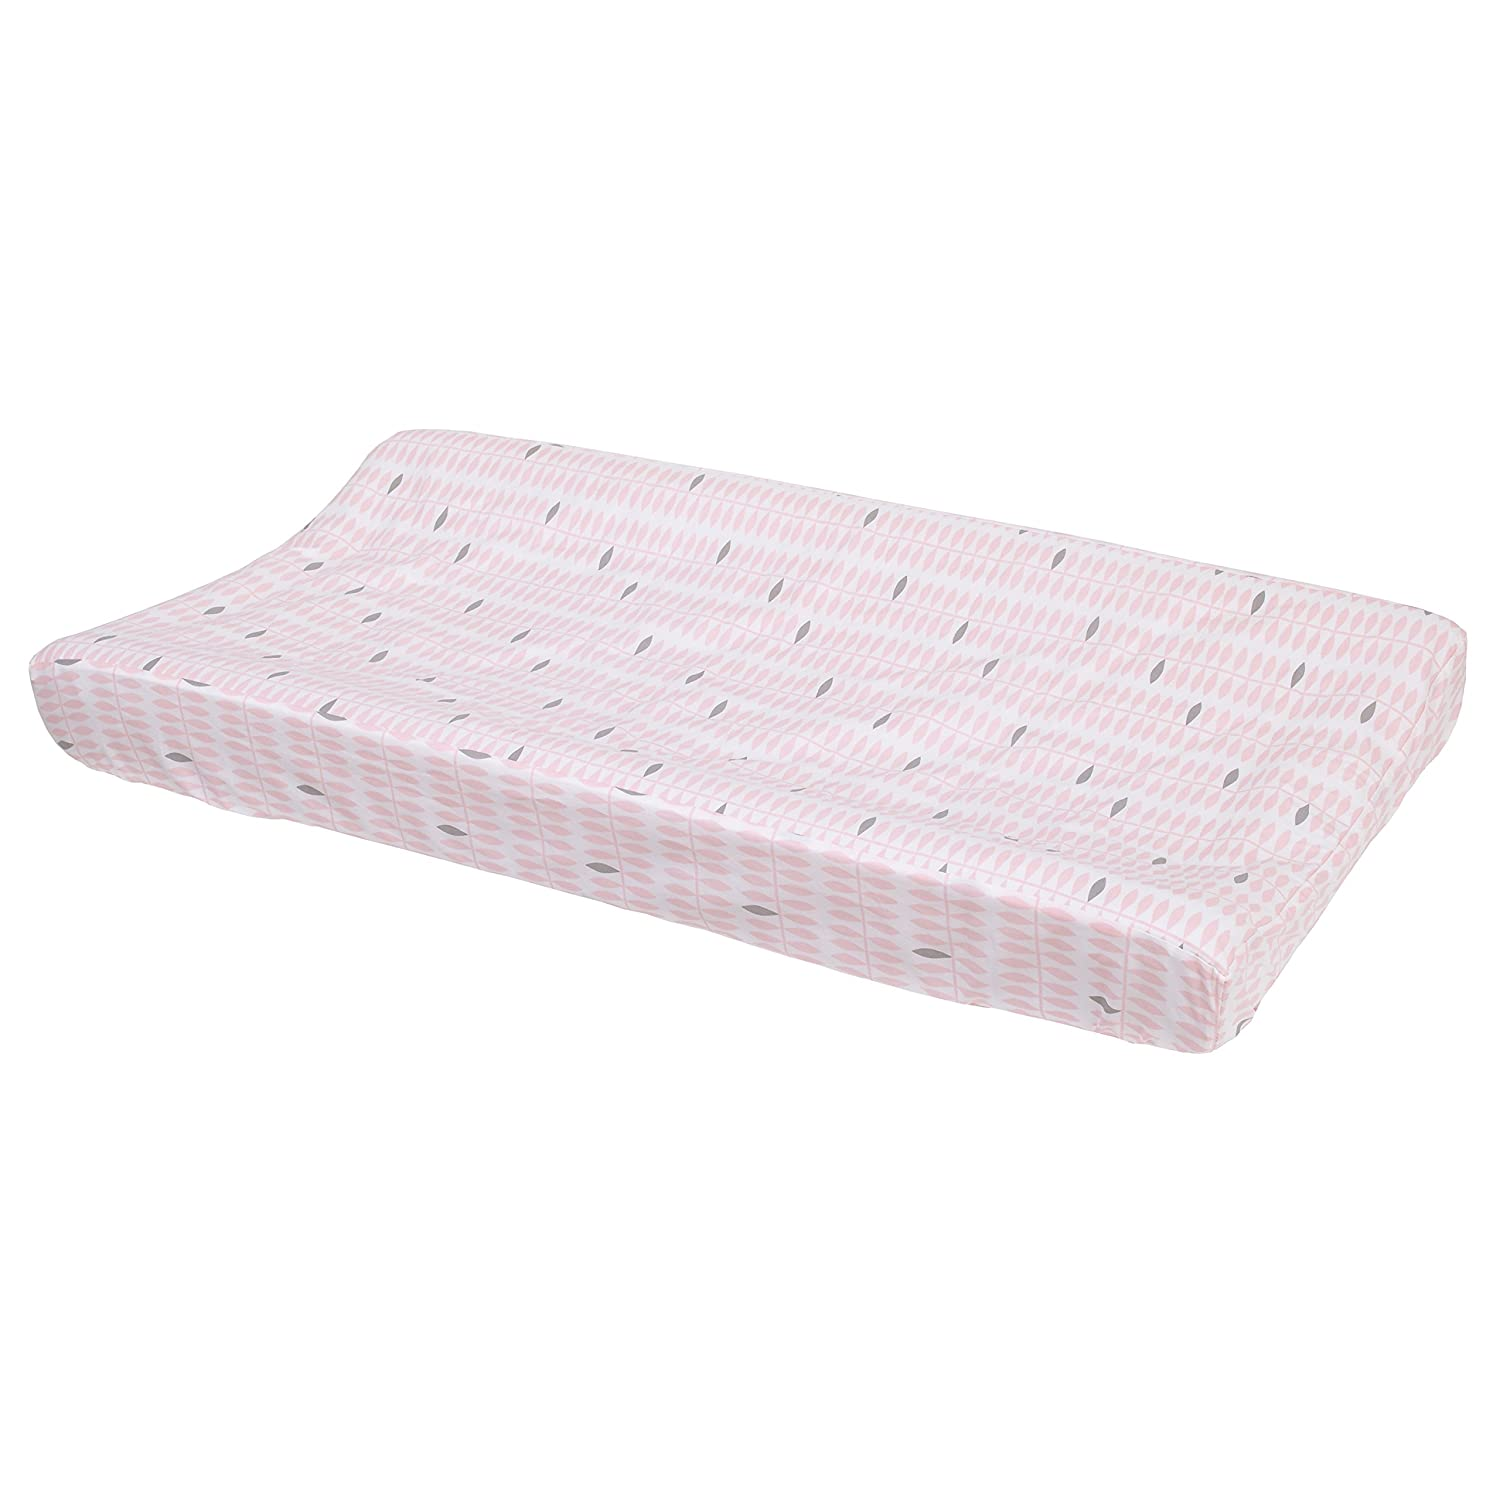 Petunia Pickle Bottom Dreaming in Dax Quilted Changing Pad Cover, Pink/Gray/White Crown Crafts Infant Products 8455357